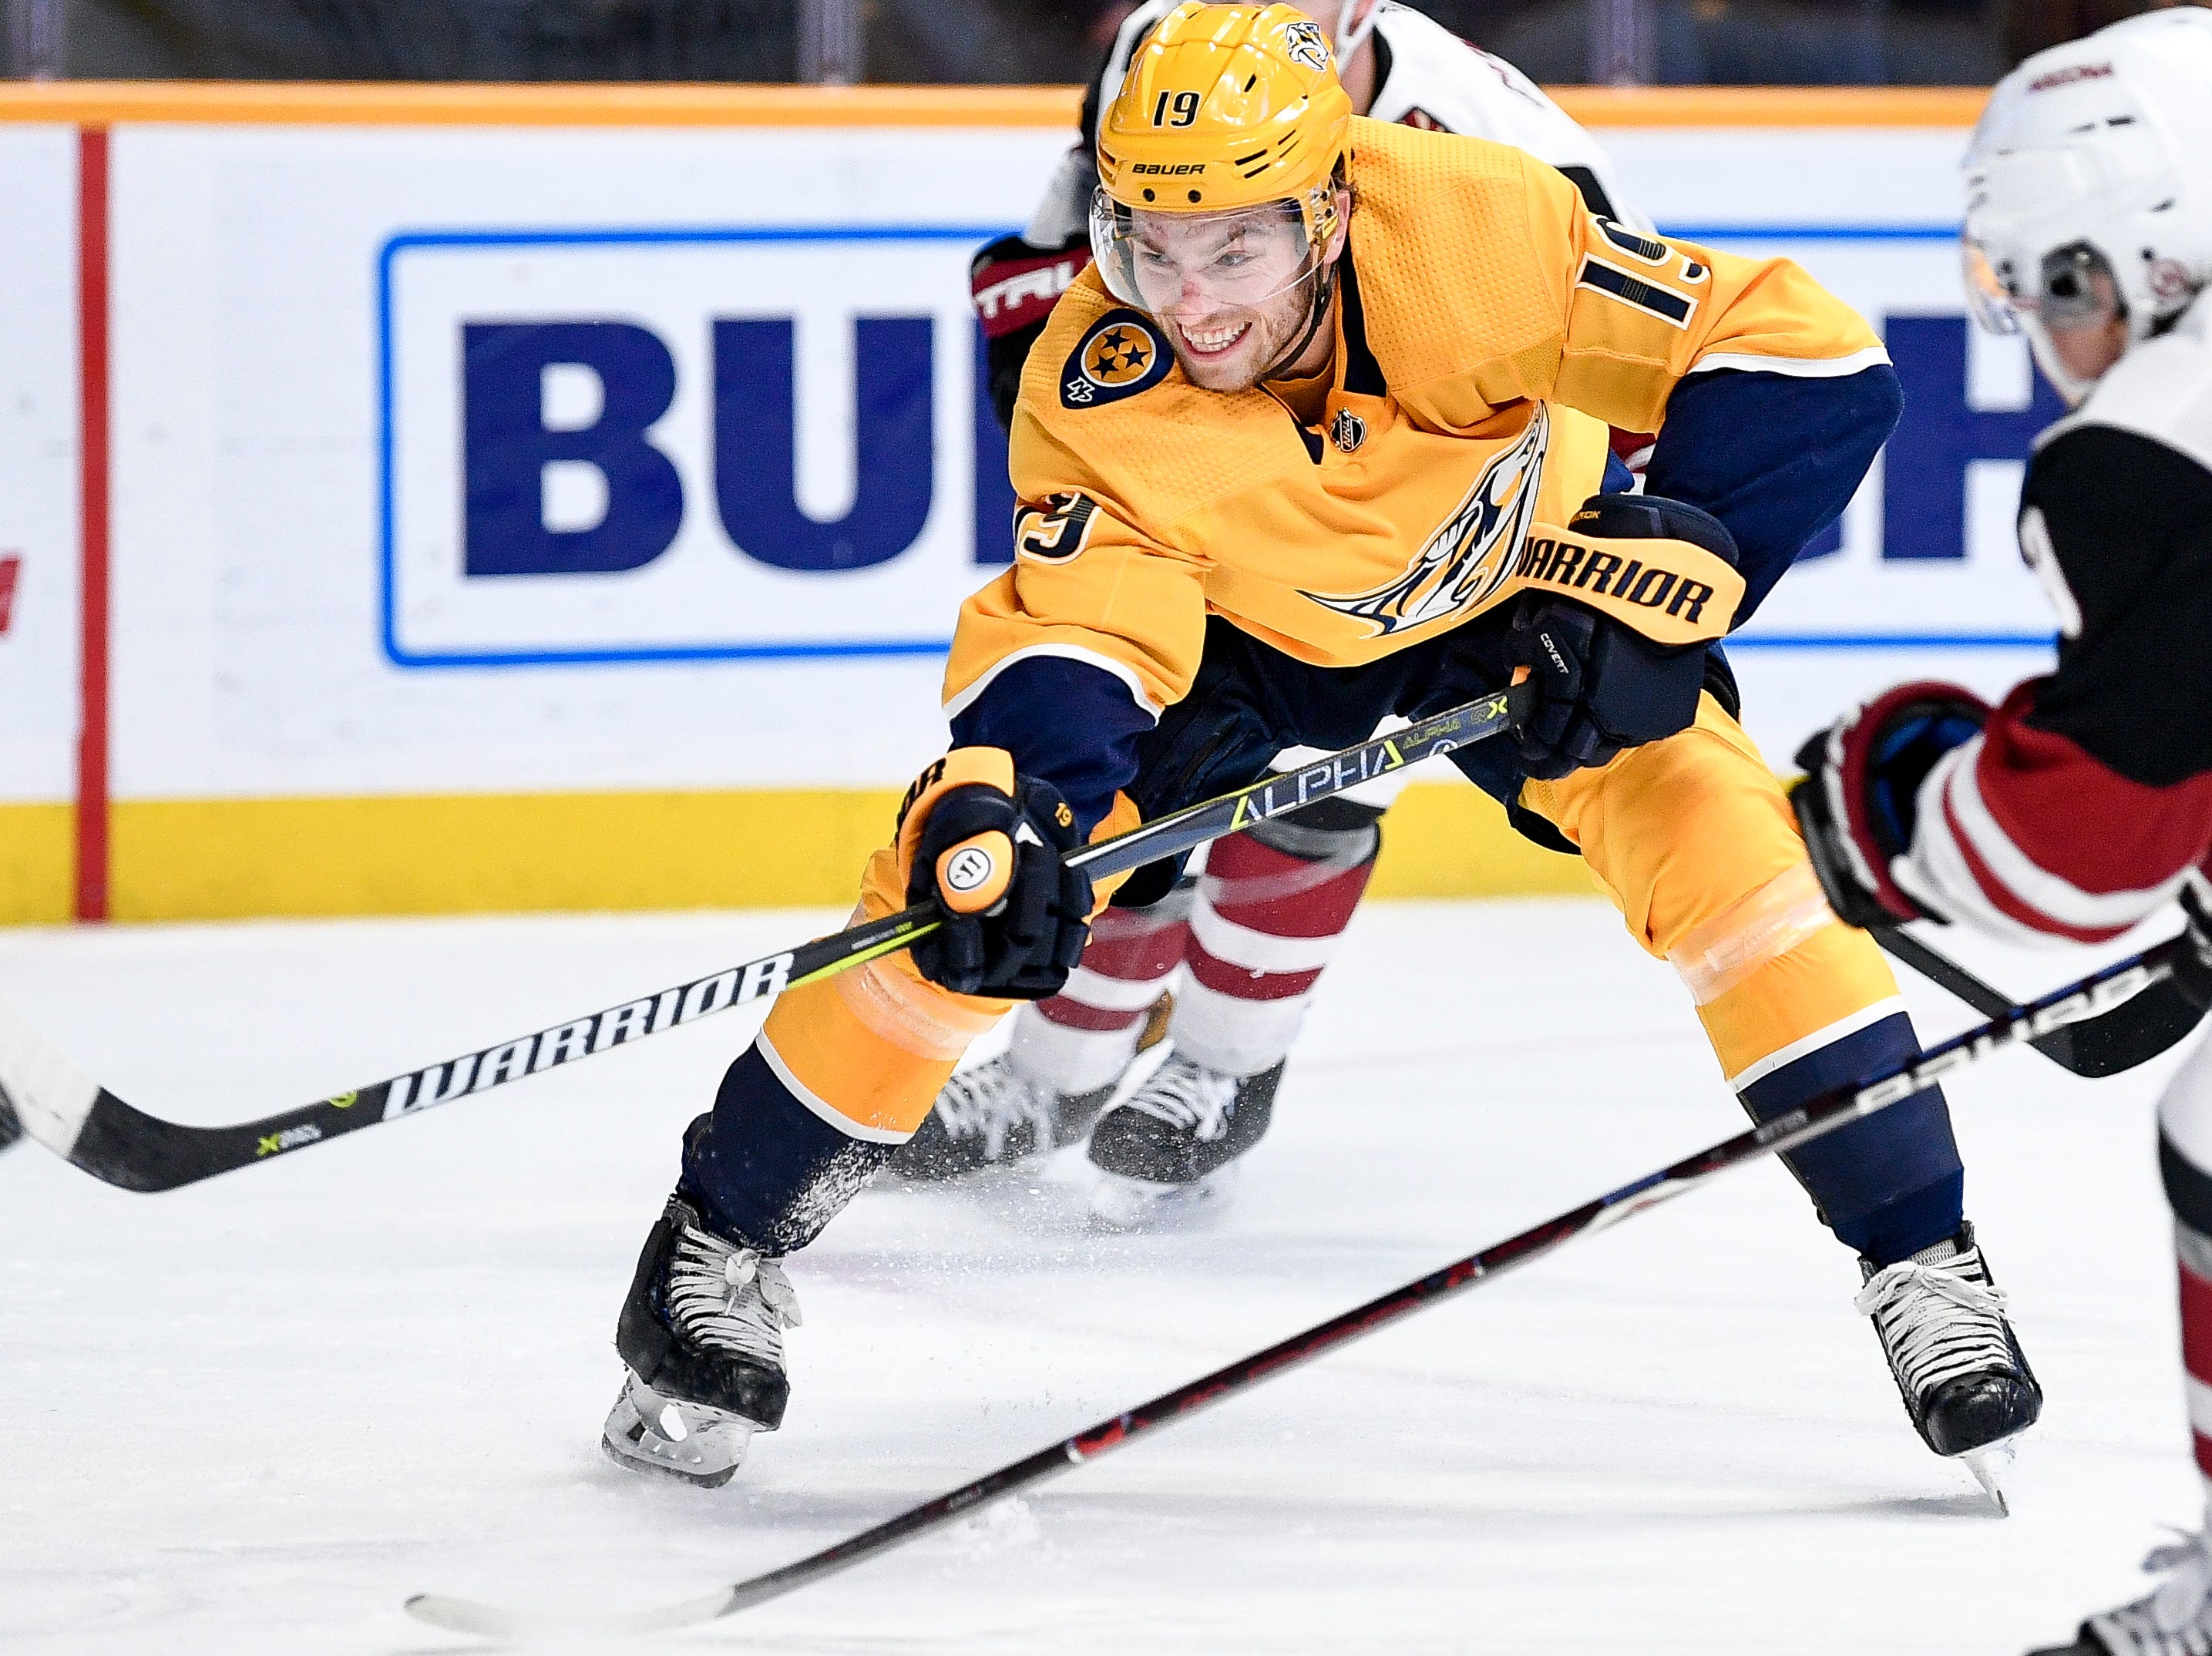 Nashville Predators center Calle Jarnkrok (19) shoots against the Arizona Coyotes during the third period at Bridgestone Arena in Nashville, Tenn., Thursday, Nov. 29, 2018.